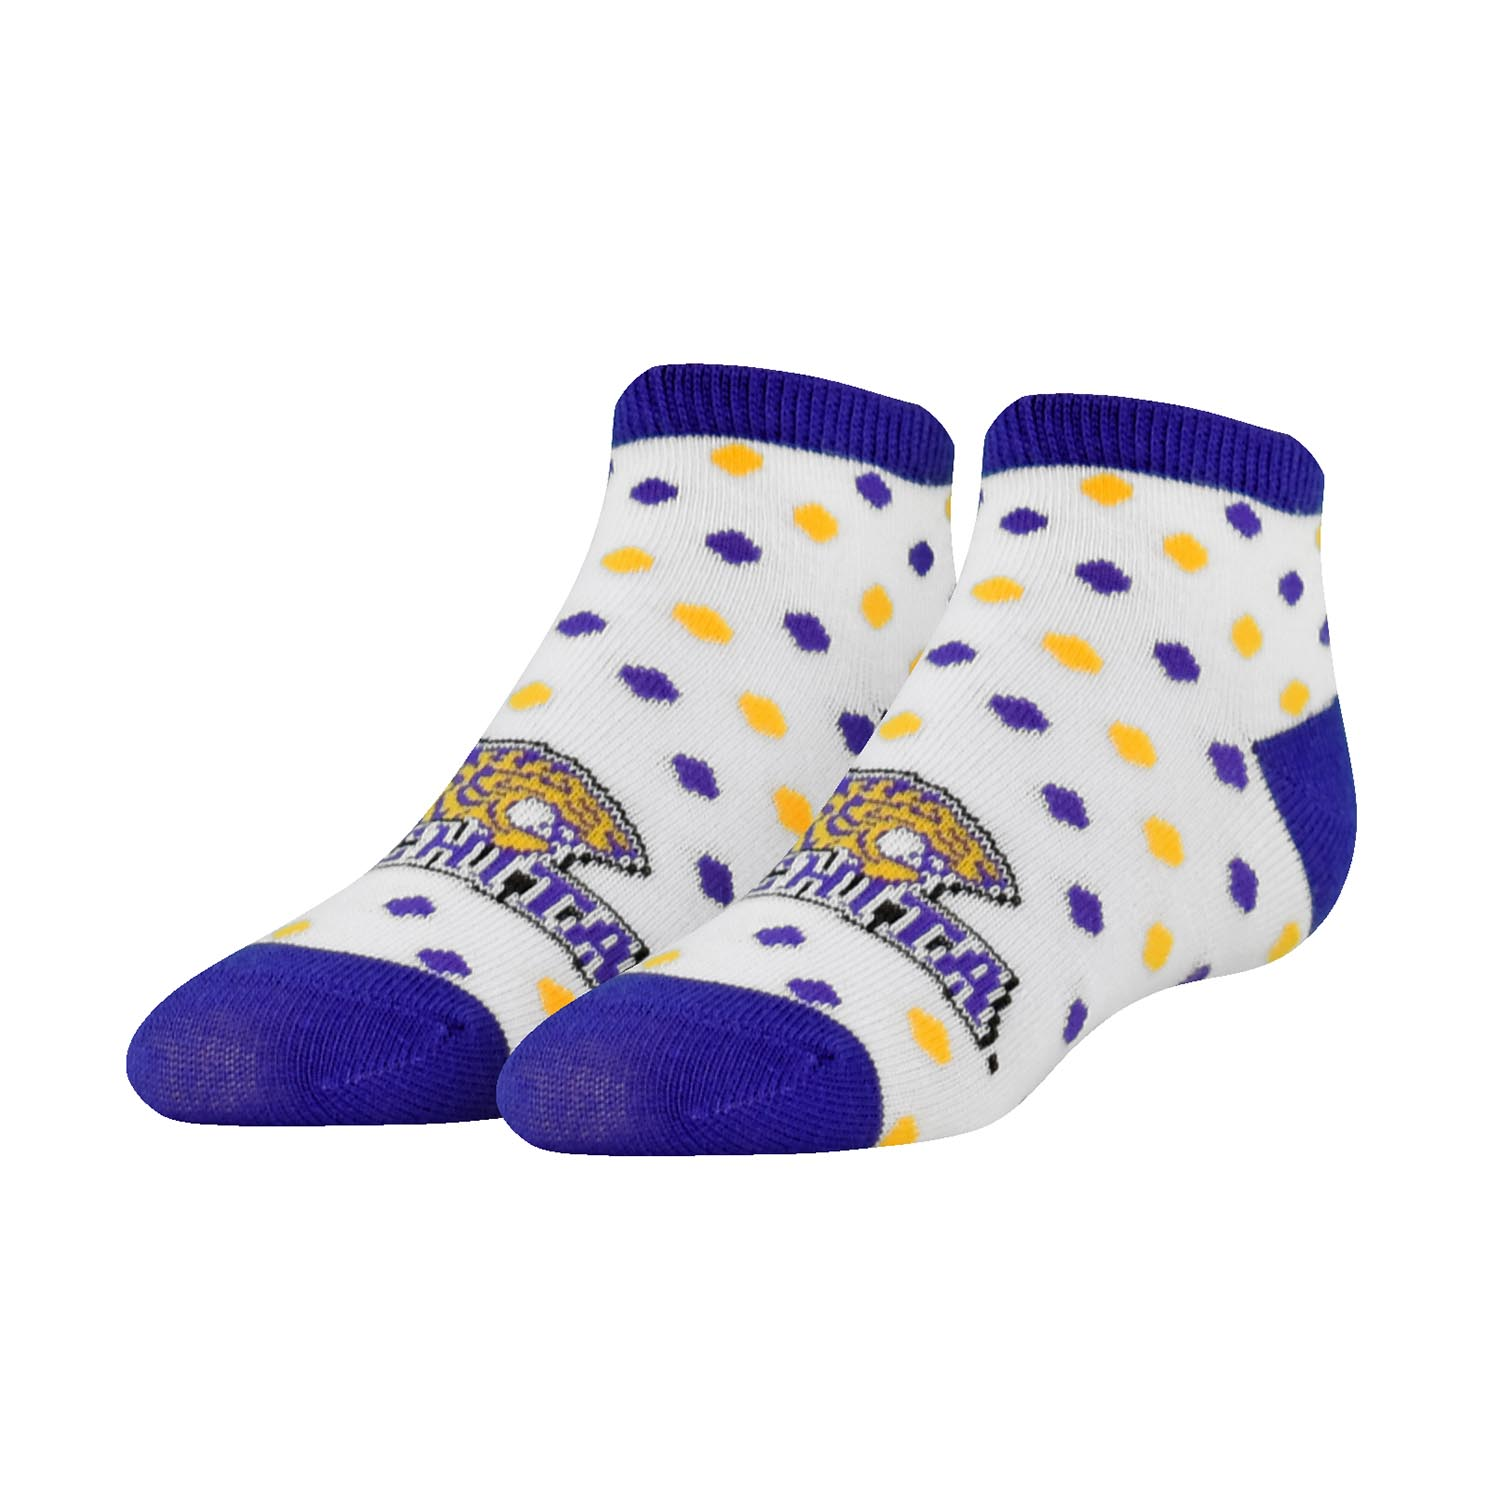 OUACHITA DOTS KIDS SOCKS